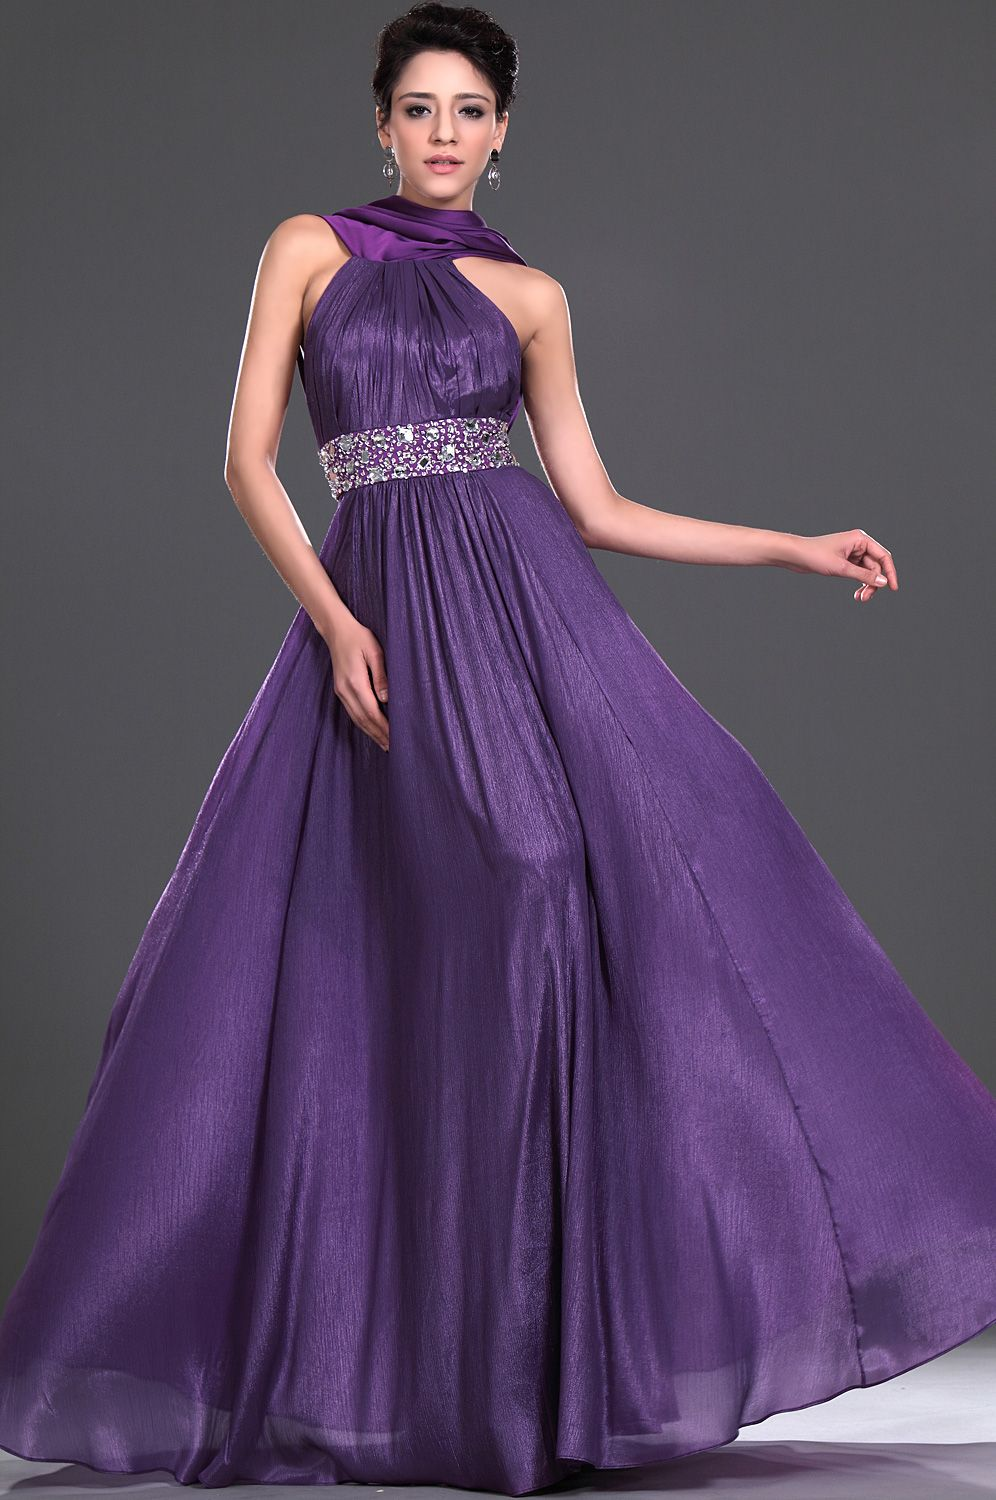 Robe se soire robes pinterest robe a line jewel court train chiffon purple military ball dress with beading ombrellifo Image collections